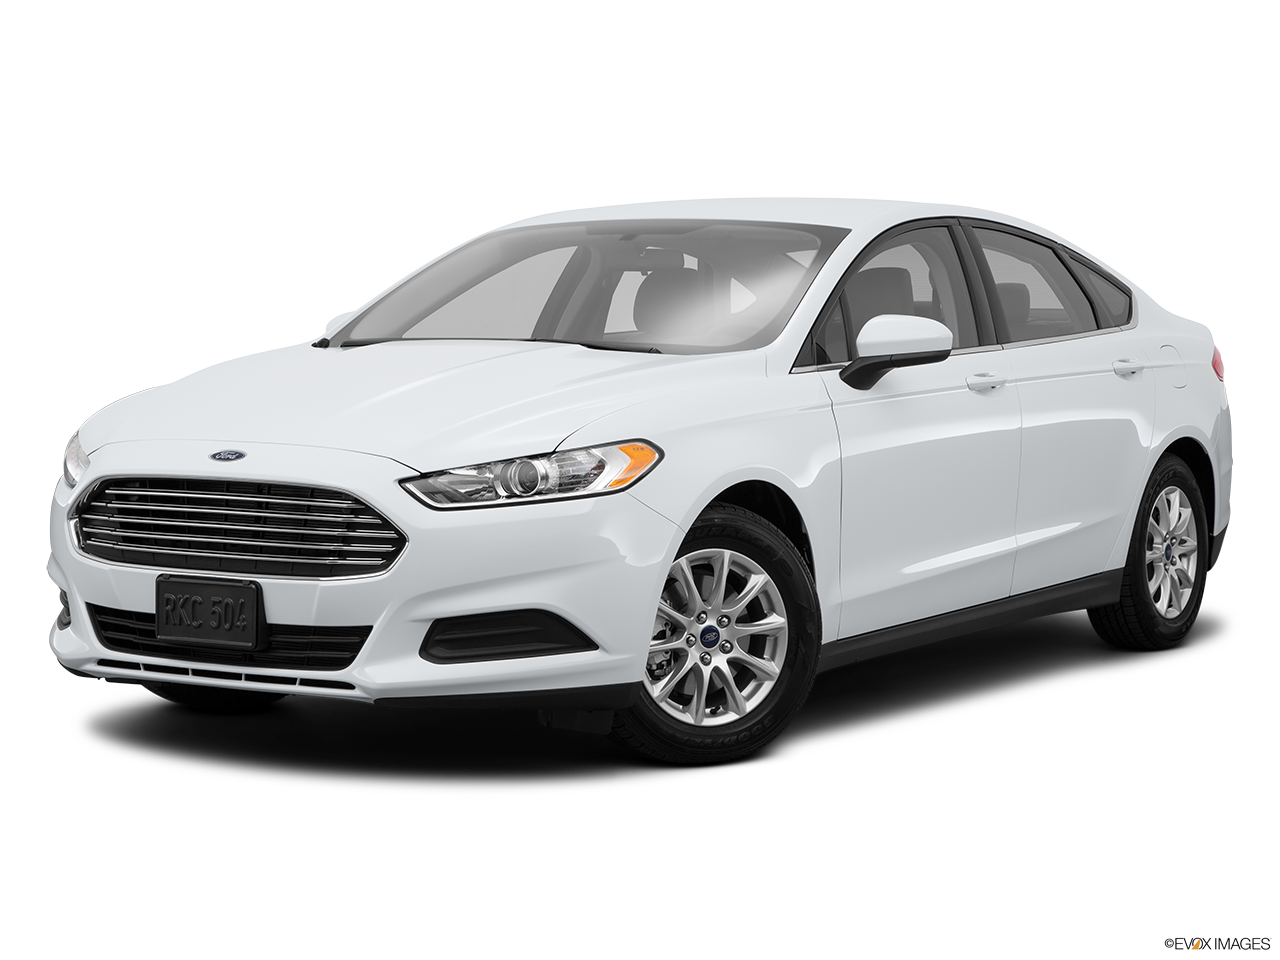 2014 Ford Fusion SE - Navigation, Alloy Wheels, Platinum Tri-Coat ...